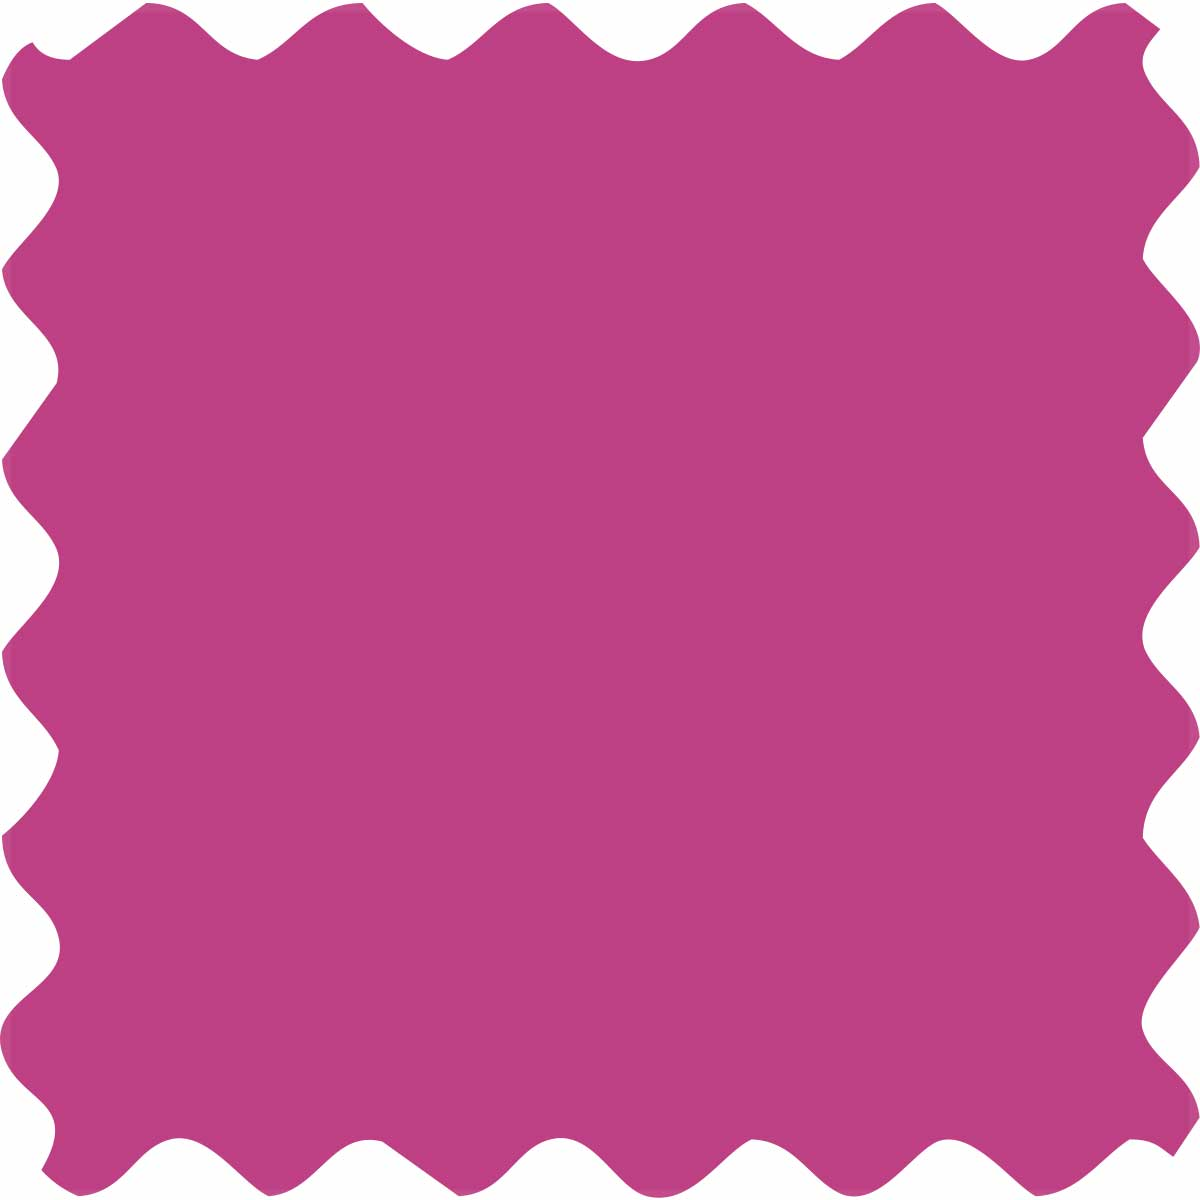 Fabric Creations™ Plush™ 3-D Fabric Paints - Sugar Plum, 2 oz. - 26338